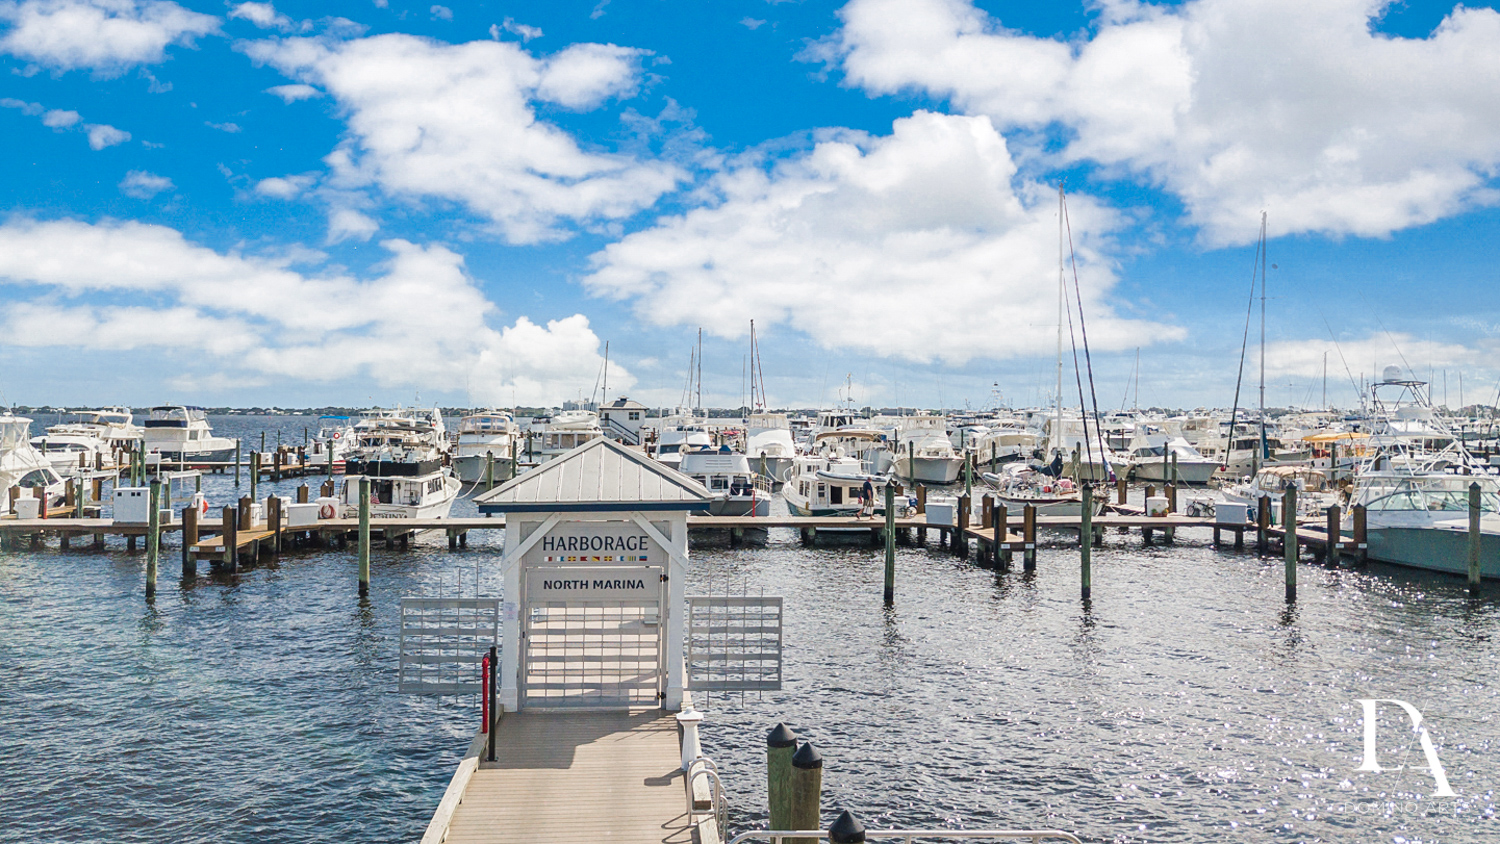 clean deck at Harborage Yacht Club & Marina by Domino Arts Photography